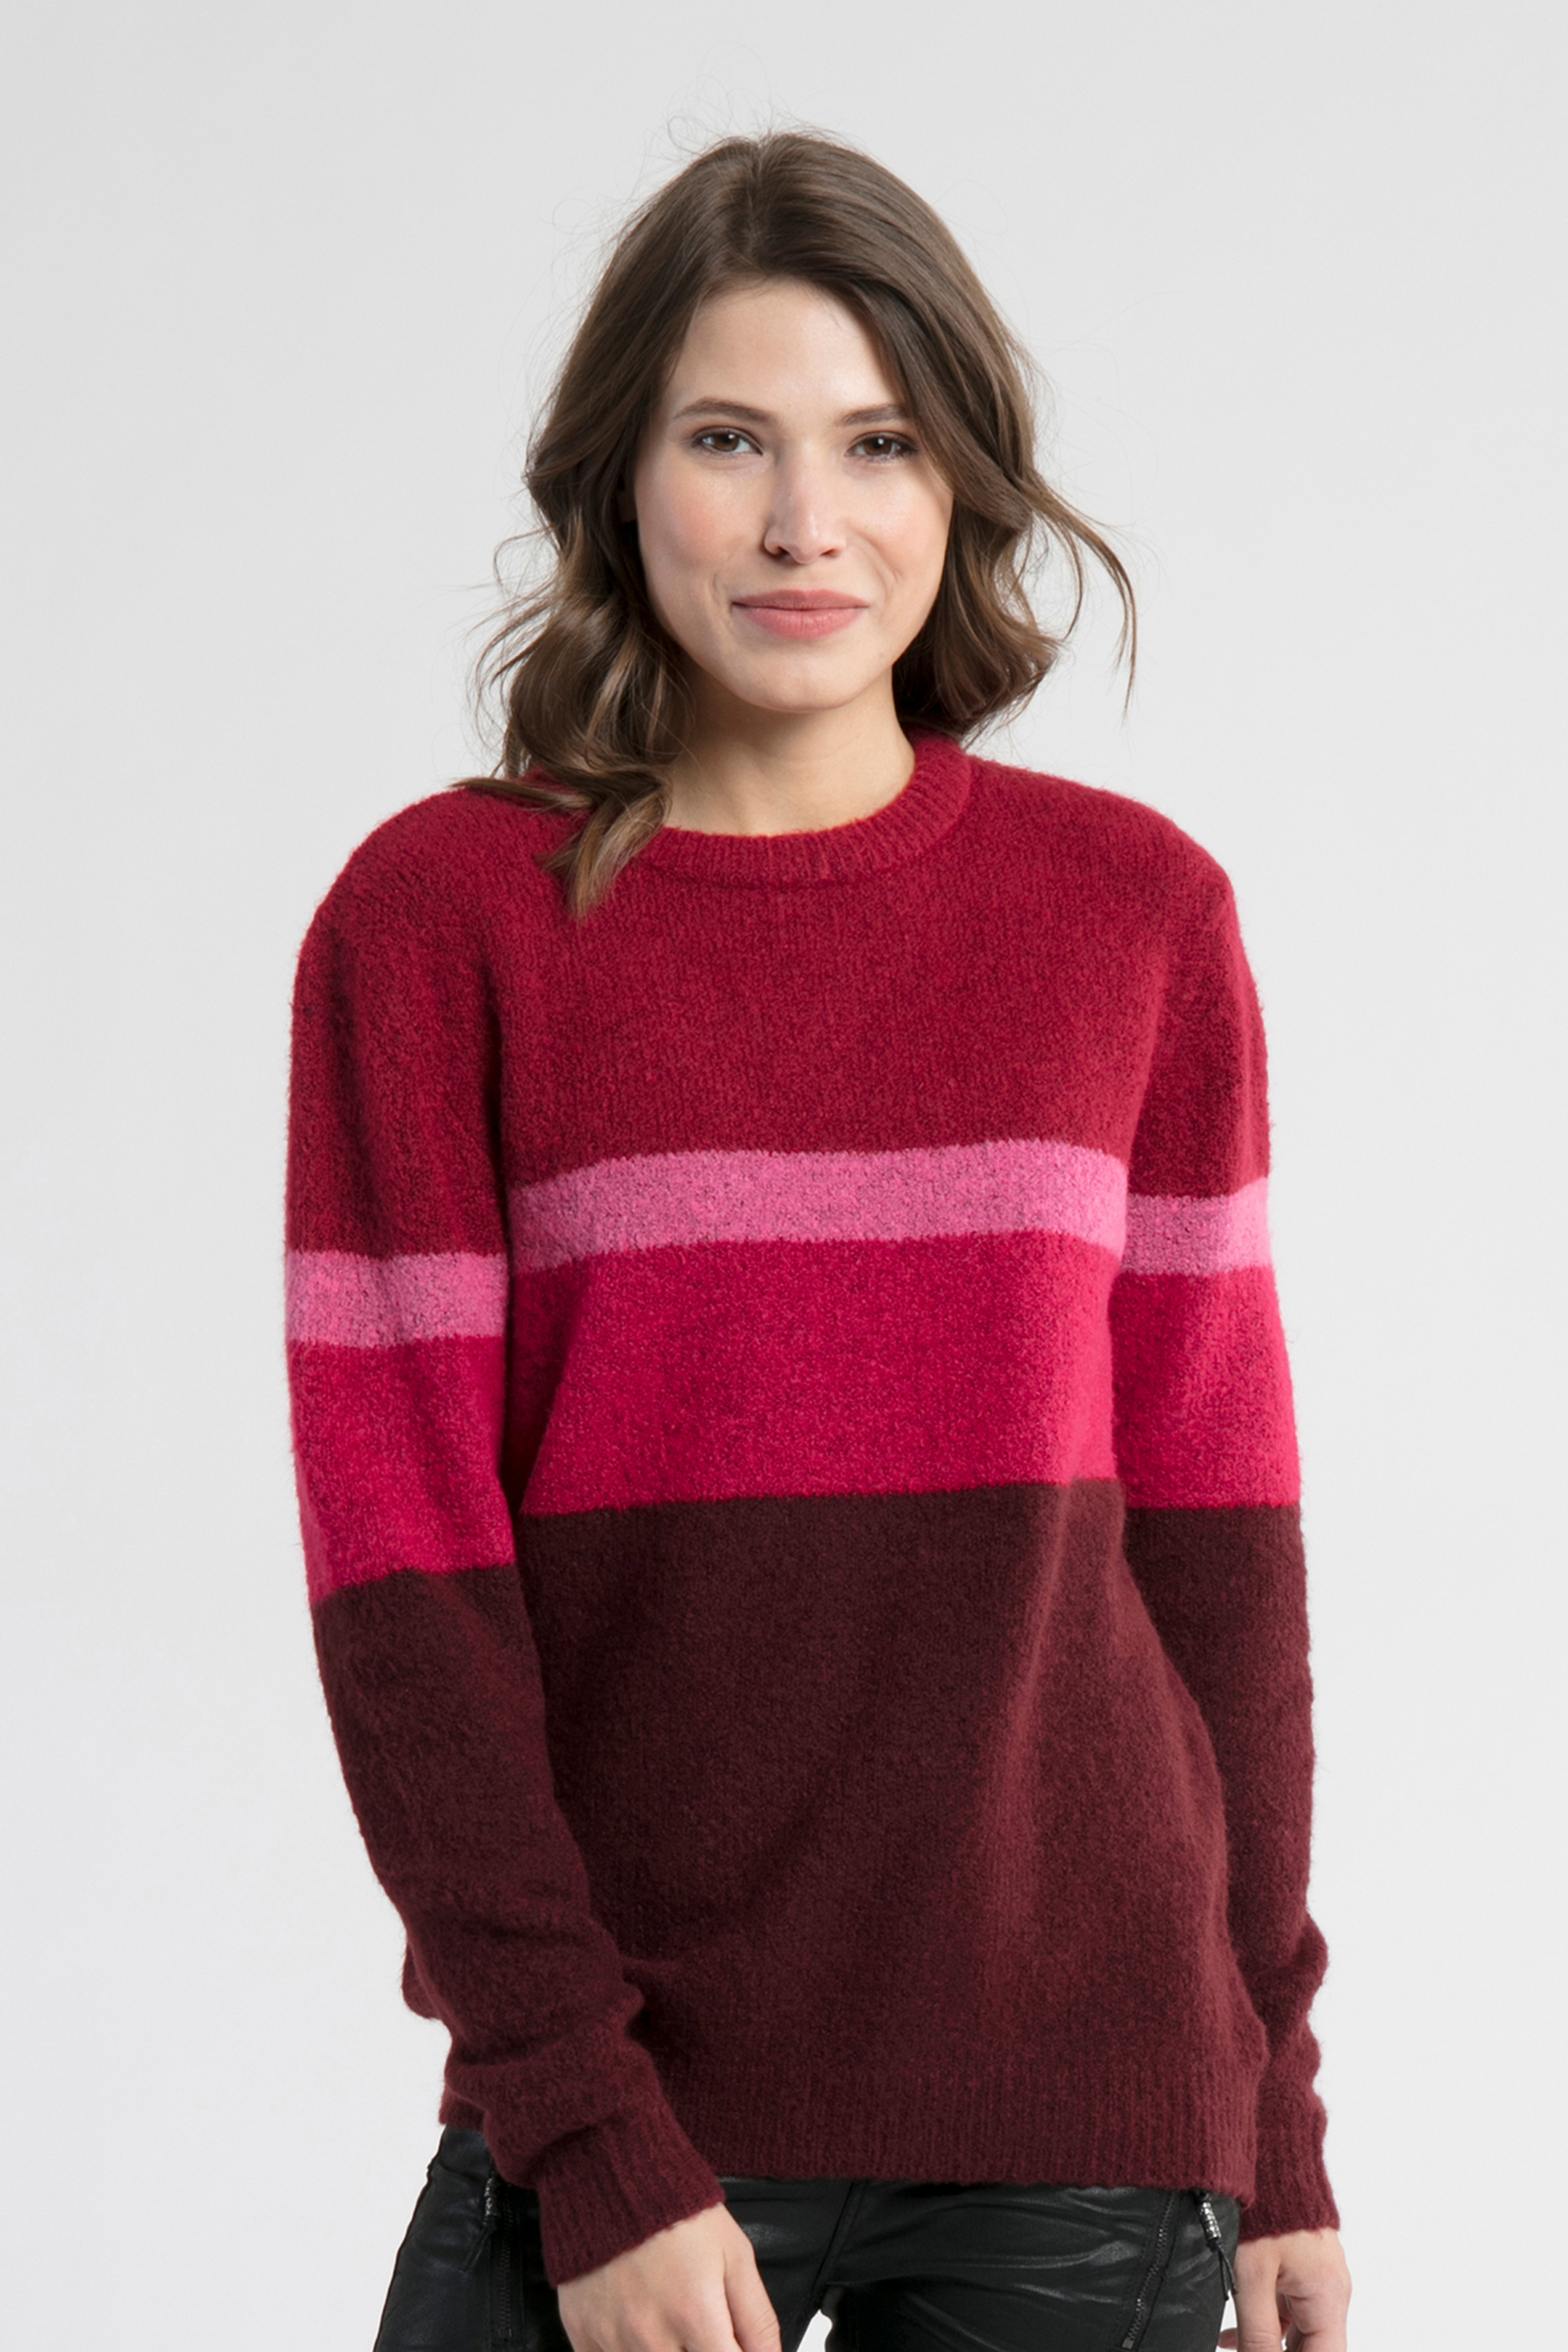 Bordeaux/rot Strickpullover von b.young – Shoppen Sie Bordeaux/rot Strickpullover ab Gr. XS-XXL hier